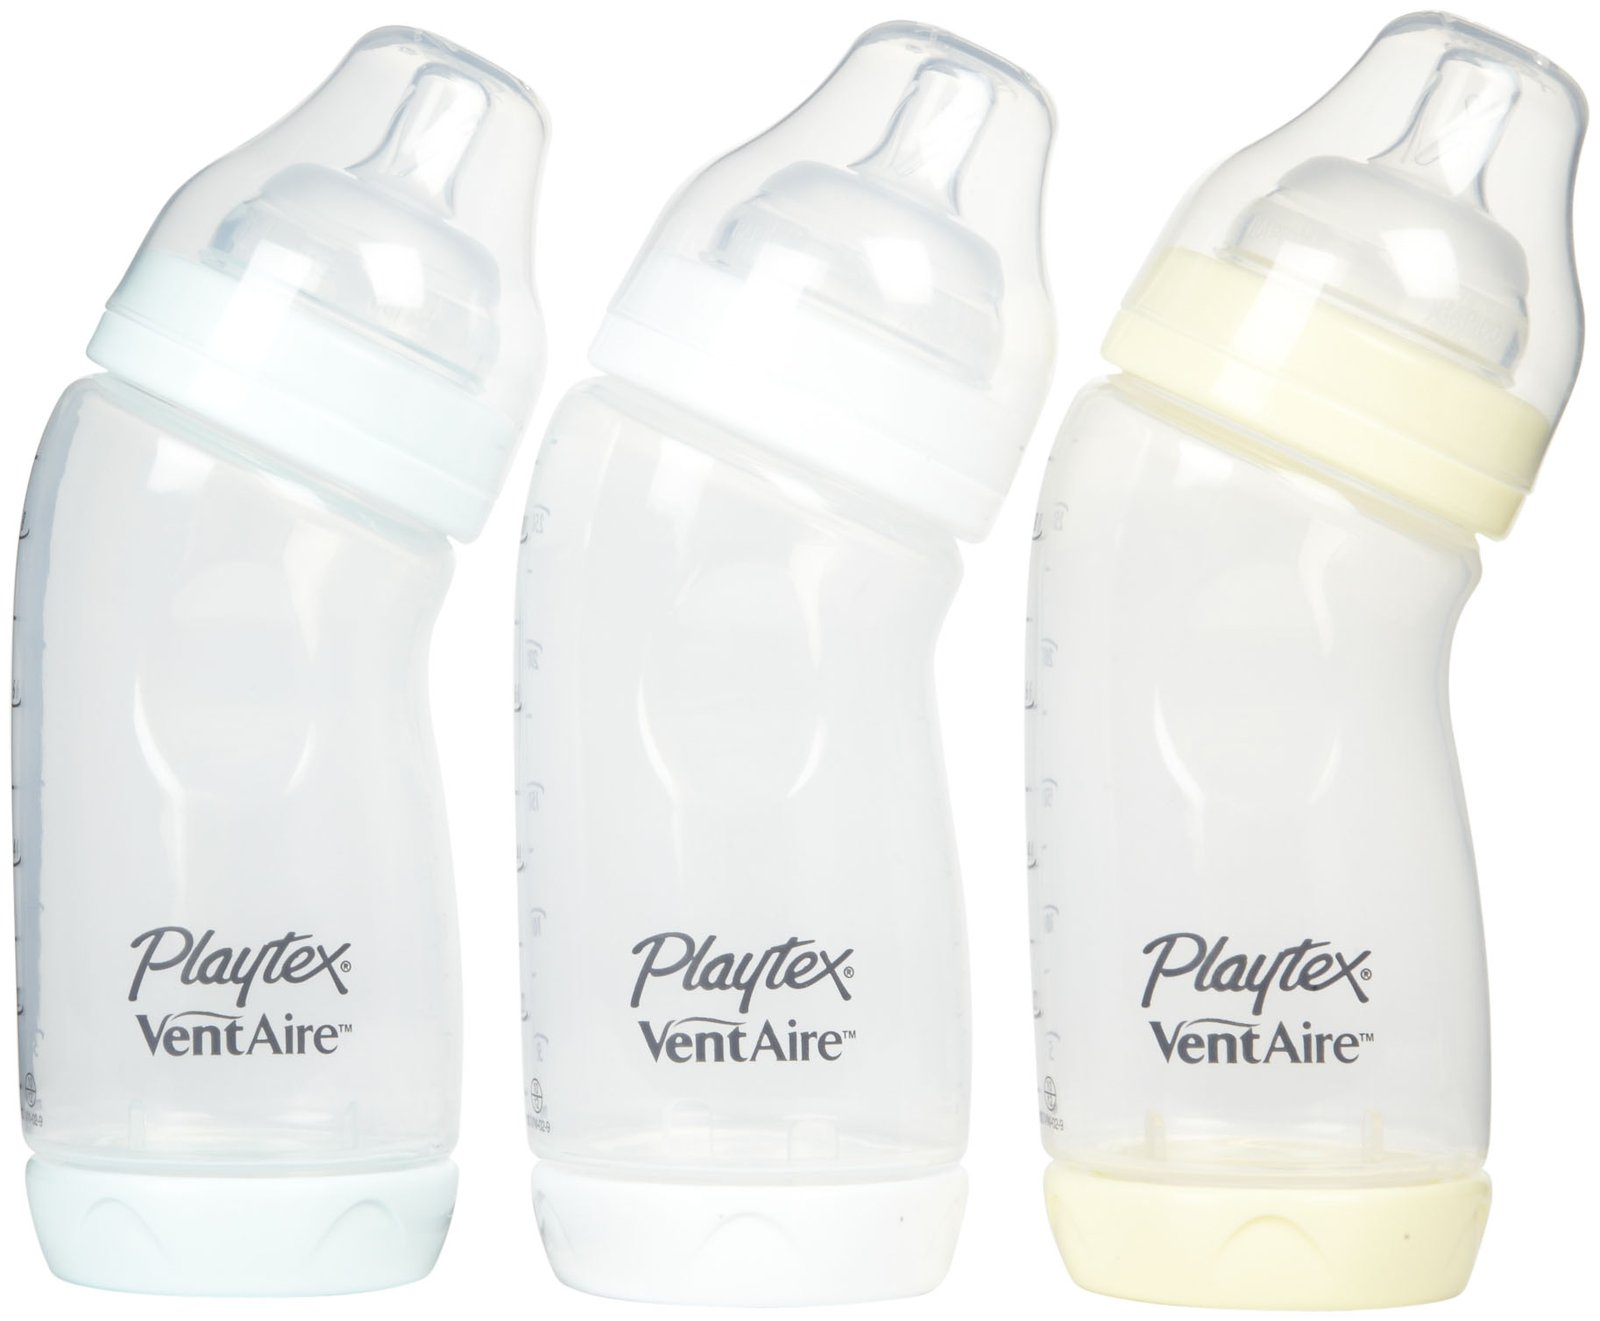 Top Lightweight Travel System Strollers Review Of Playtex Ventaire Advanced Wide Baby Bottles